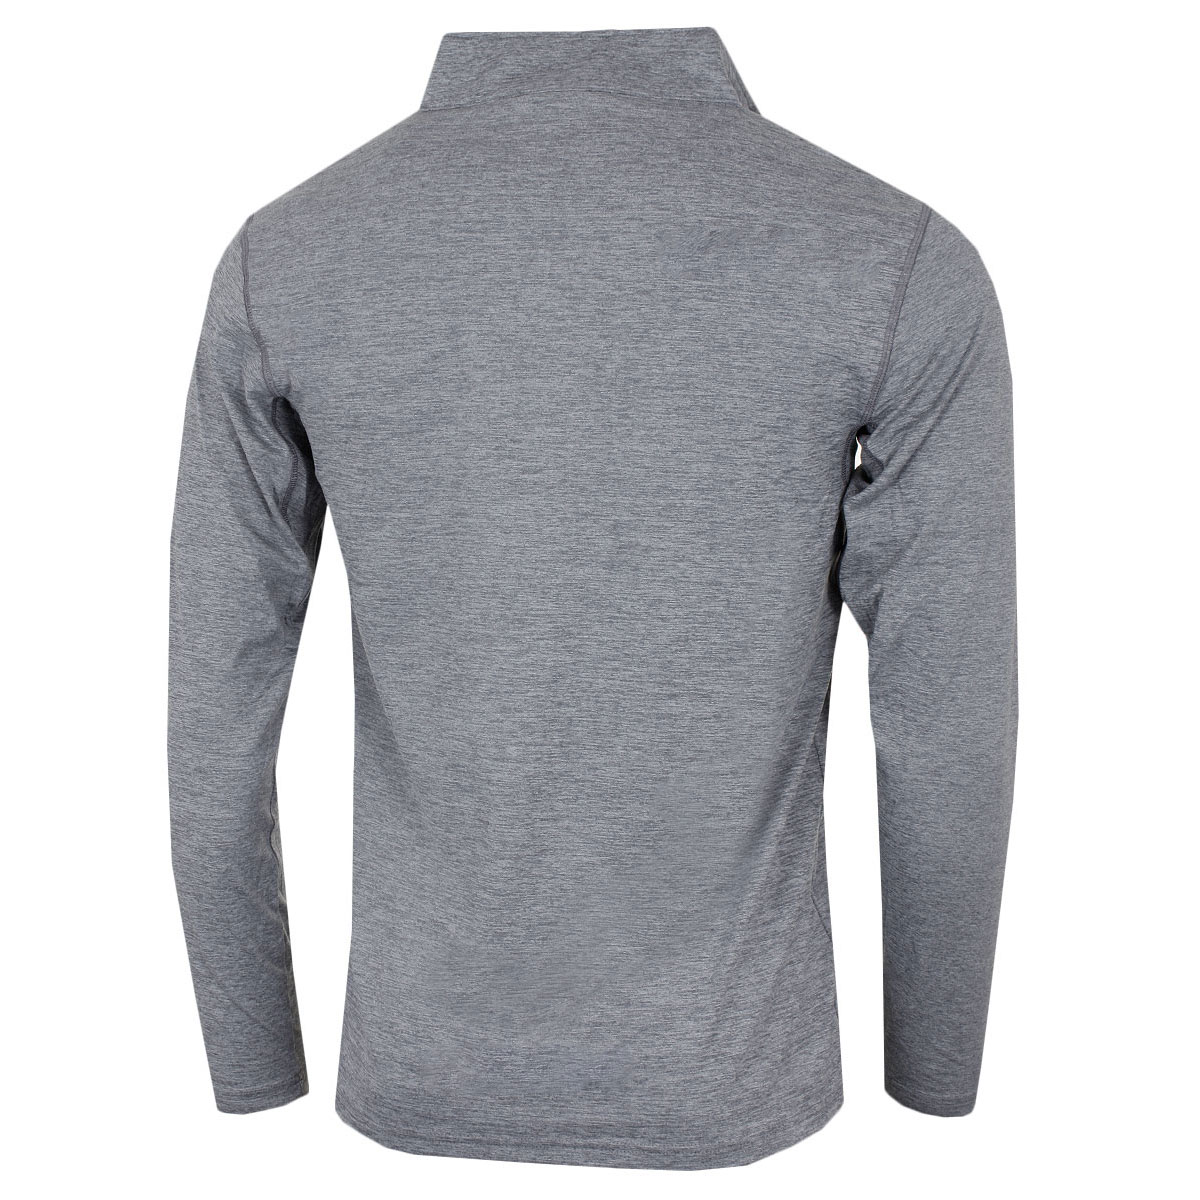 Calvin-Klein-Mens-Newport-HZ-LS-Breathable-Lightweight-Sweater-28-OFF-RRP thumbnail 12